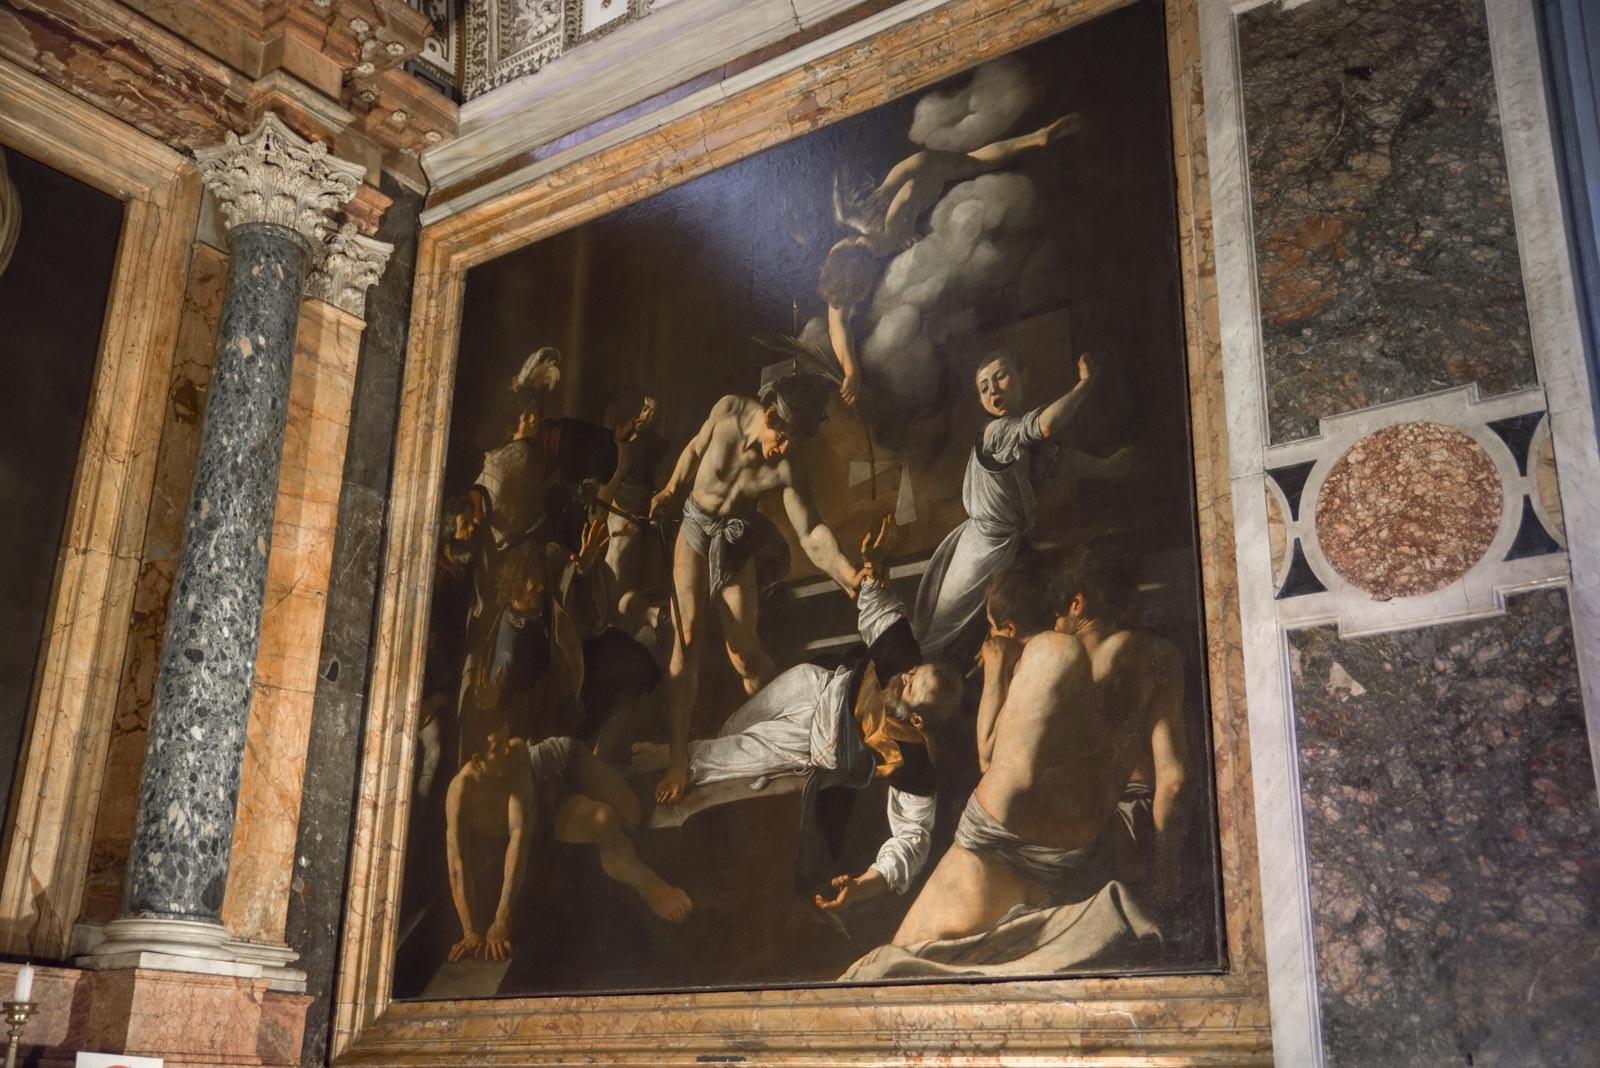 Discovering Caravaggio, Raphael and Pantheon Walking tour